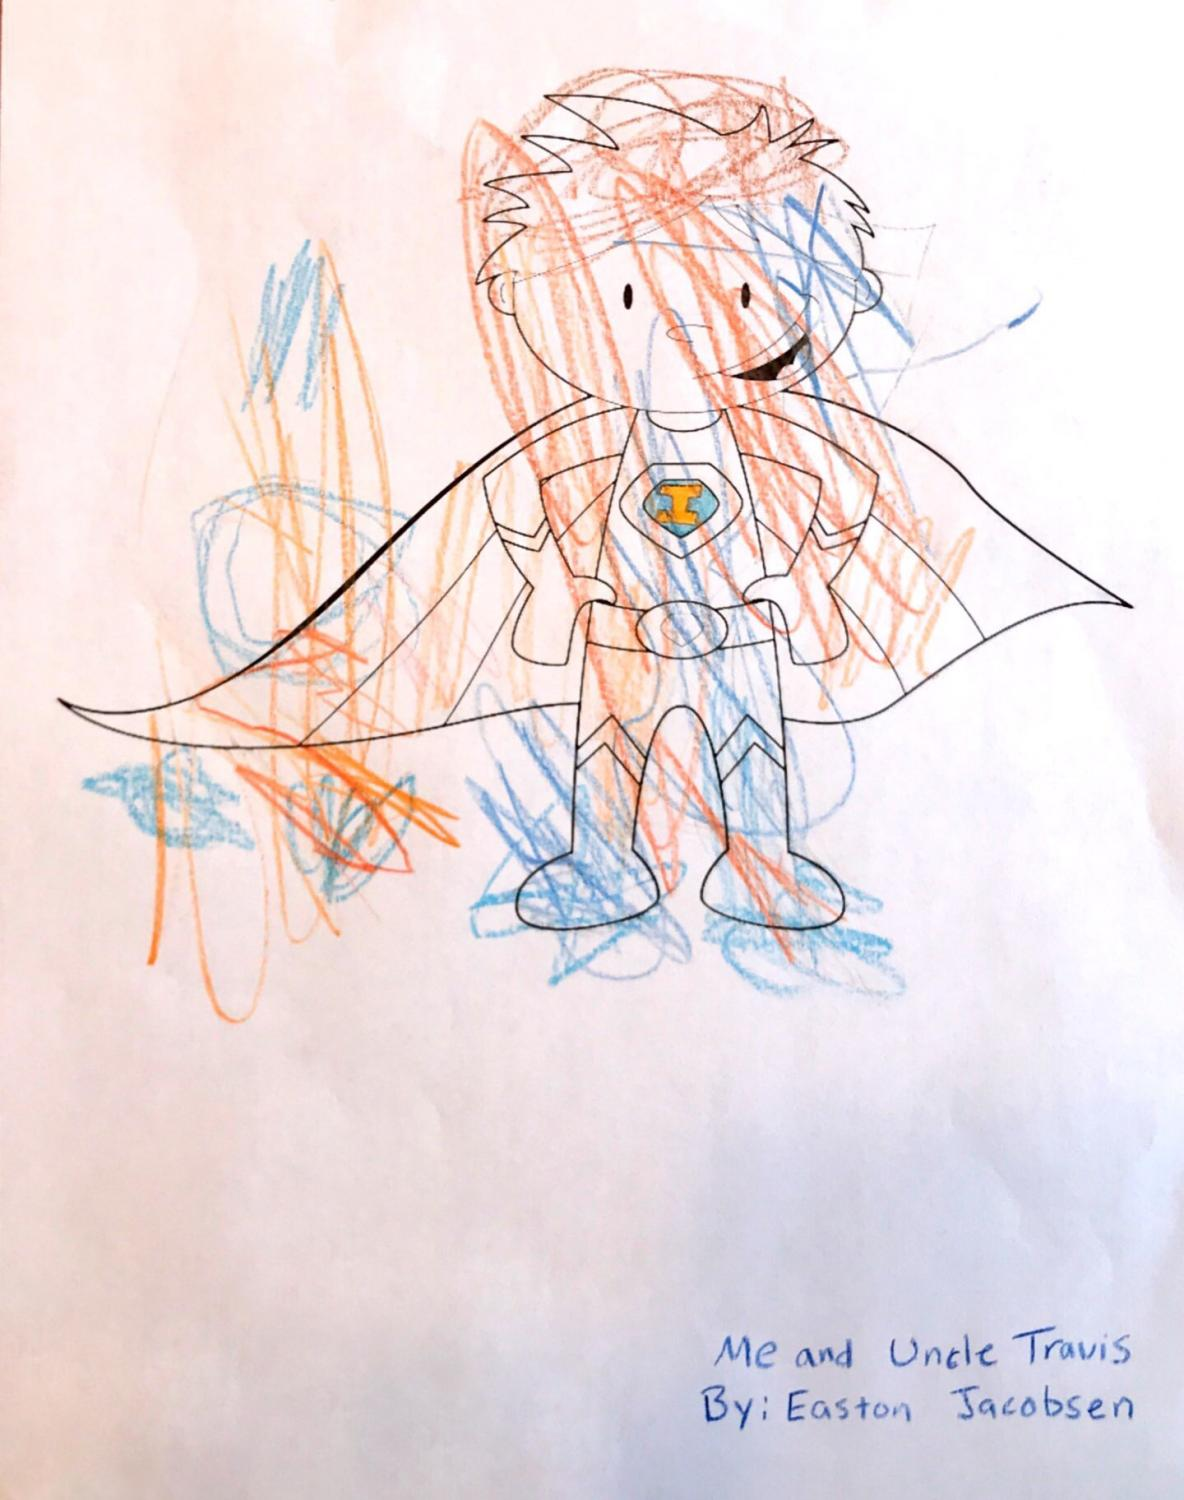 Image of a superhero coloring page colored in colorfully by a 2 year old.